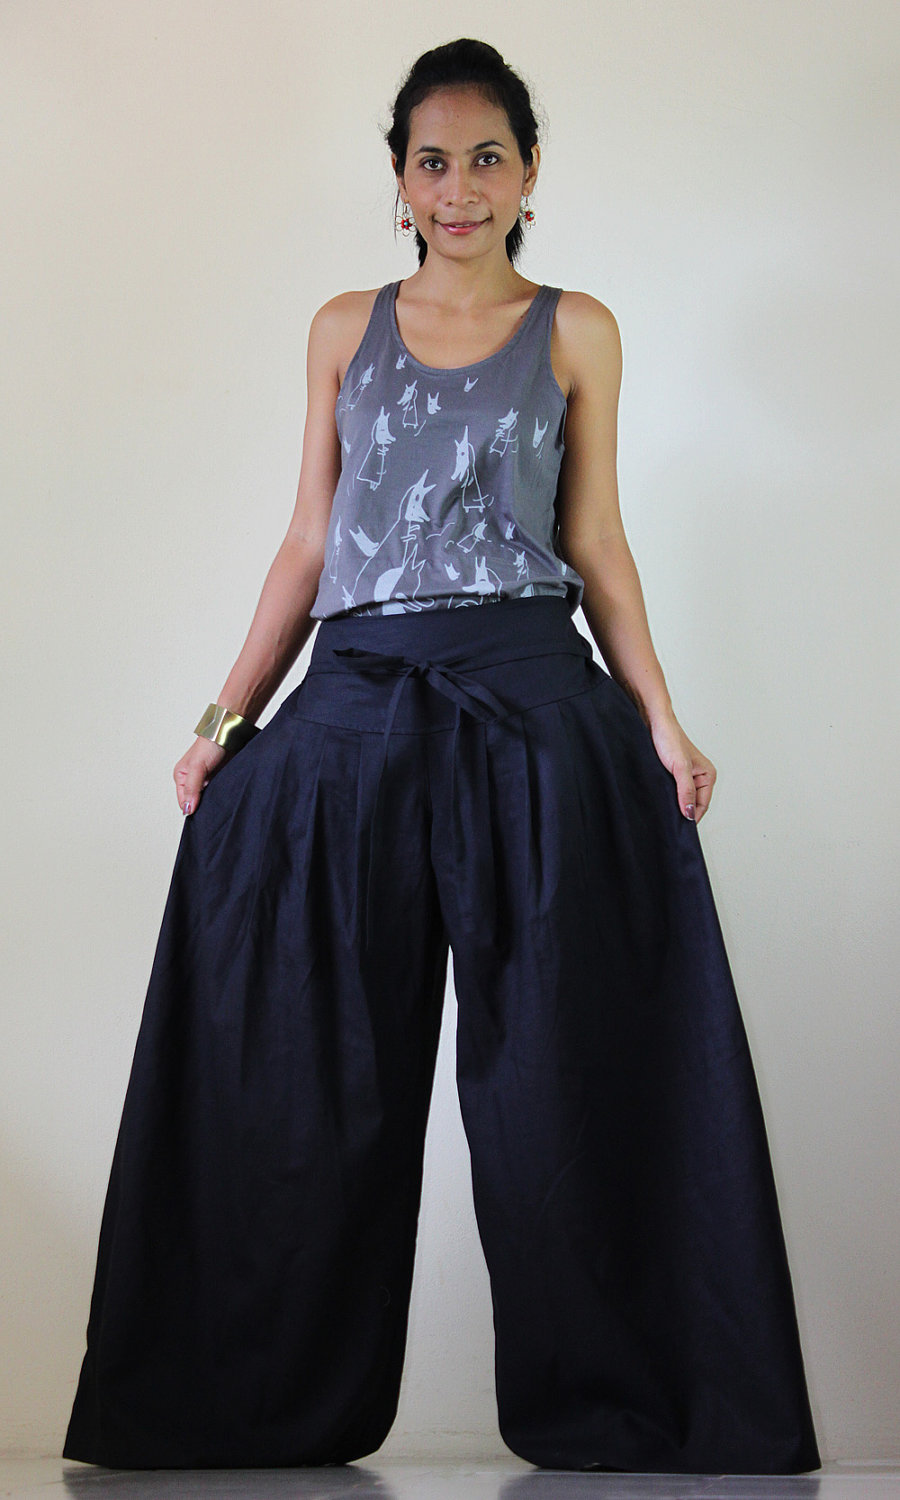 Anthracite Grey Pants - Wide Leg Pants Cotton Linen Casual Wear ...